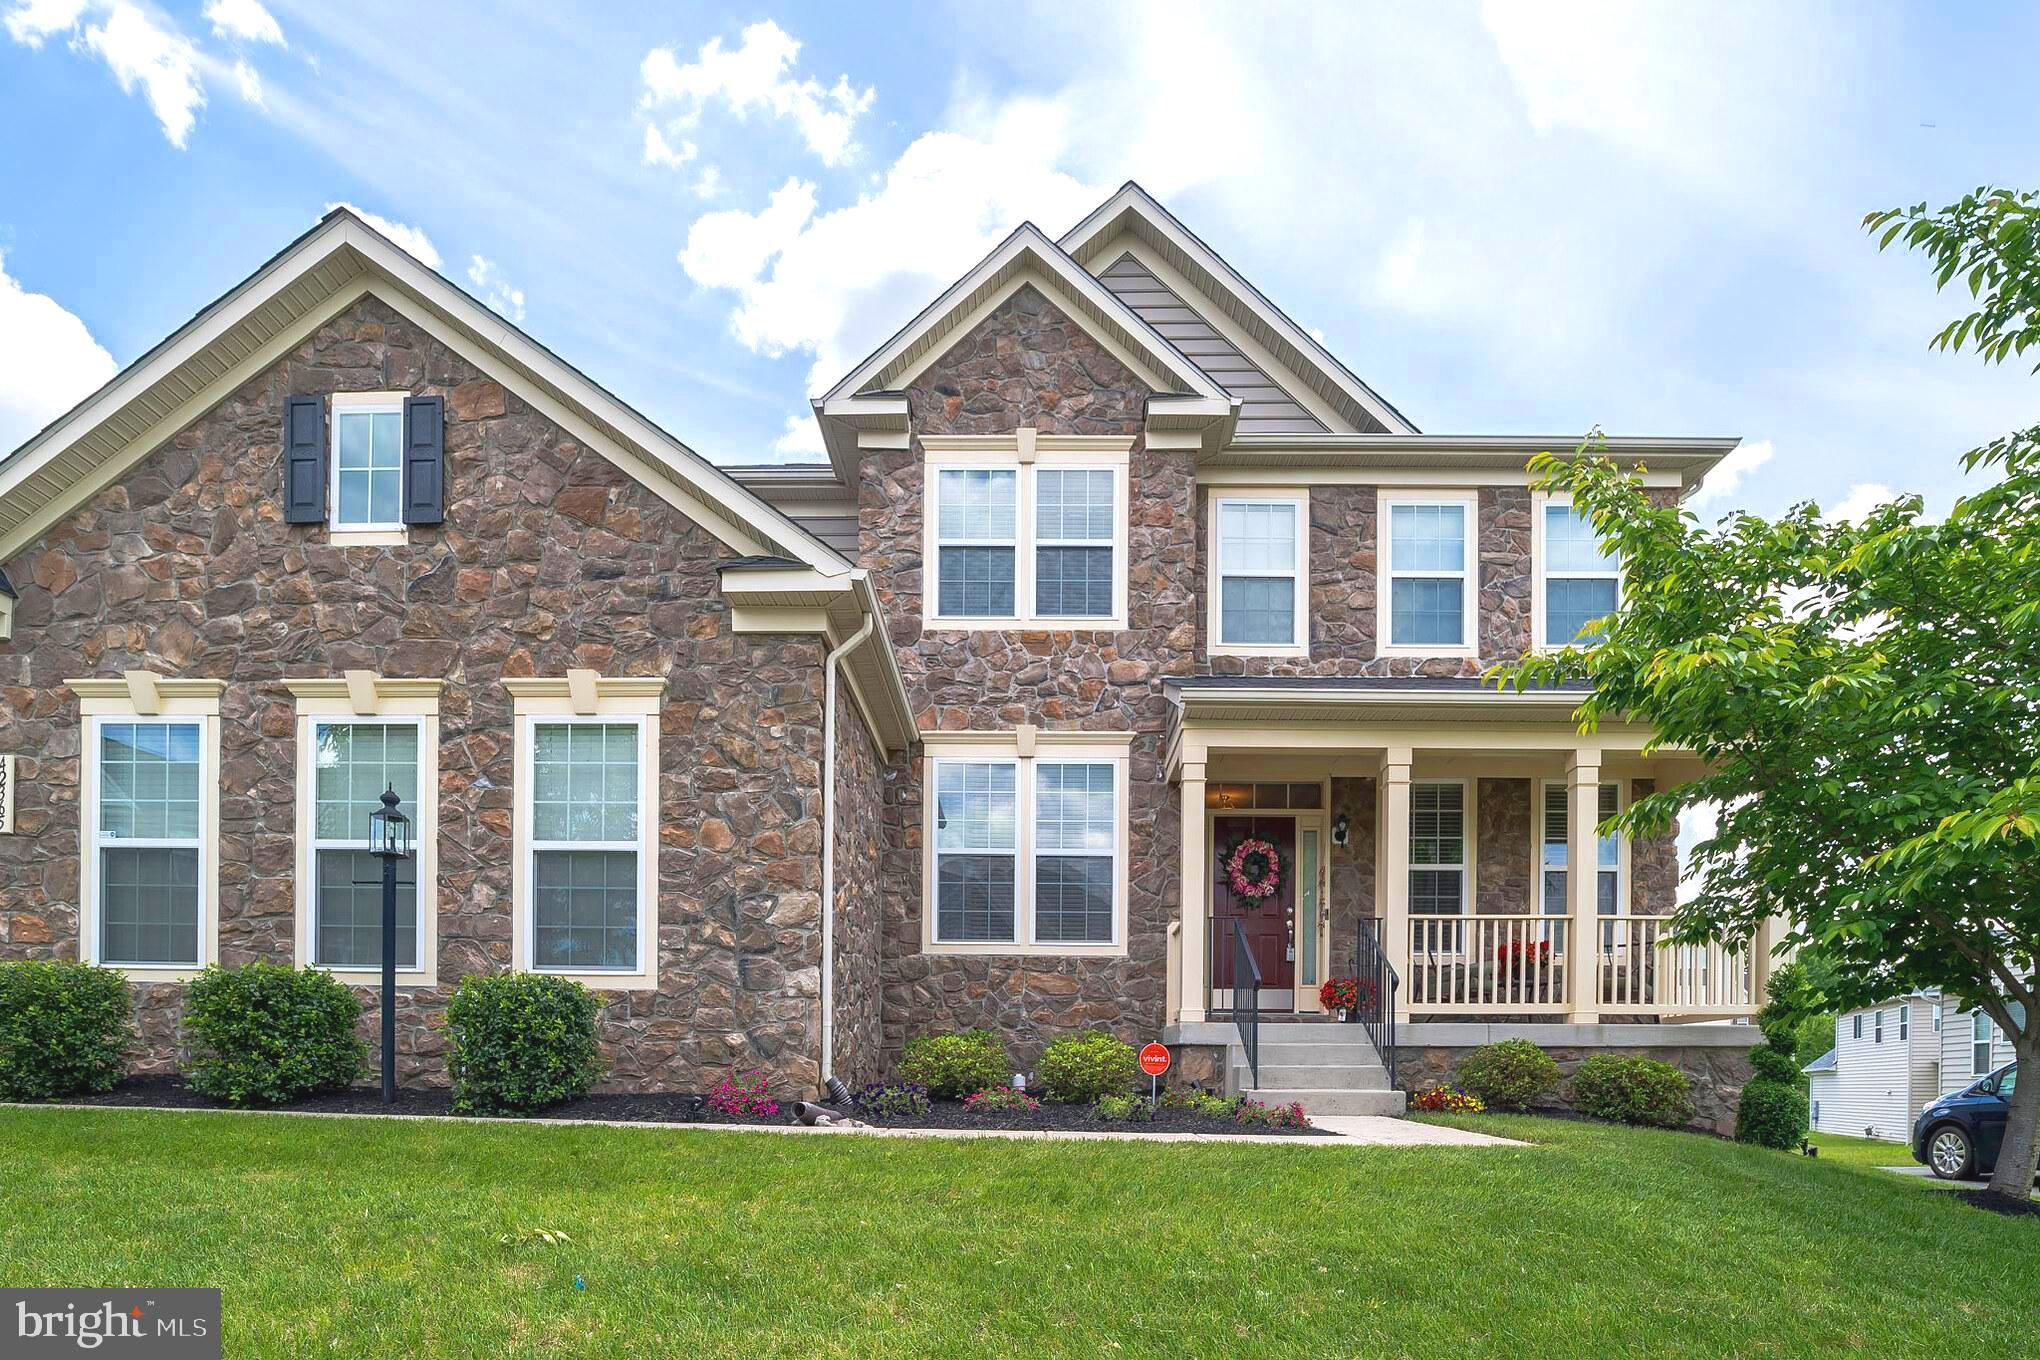 42365 WINSBURY WEST PLACE, STERLING, VA 20166